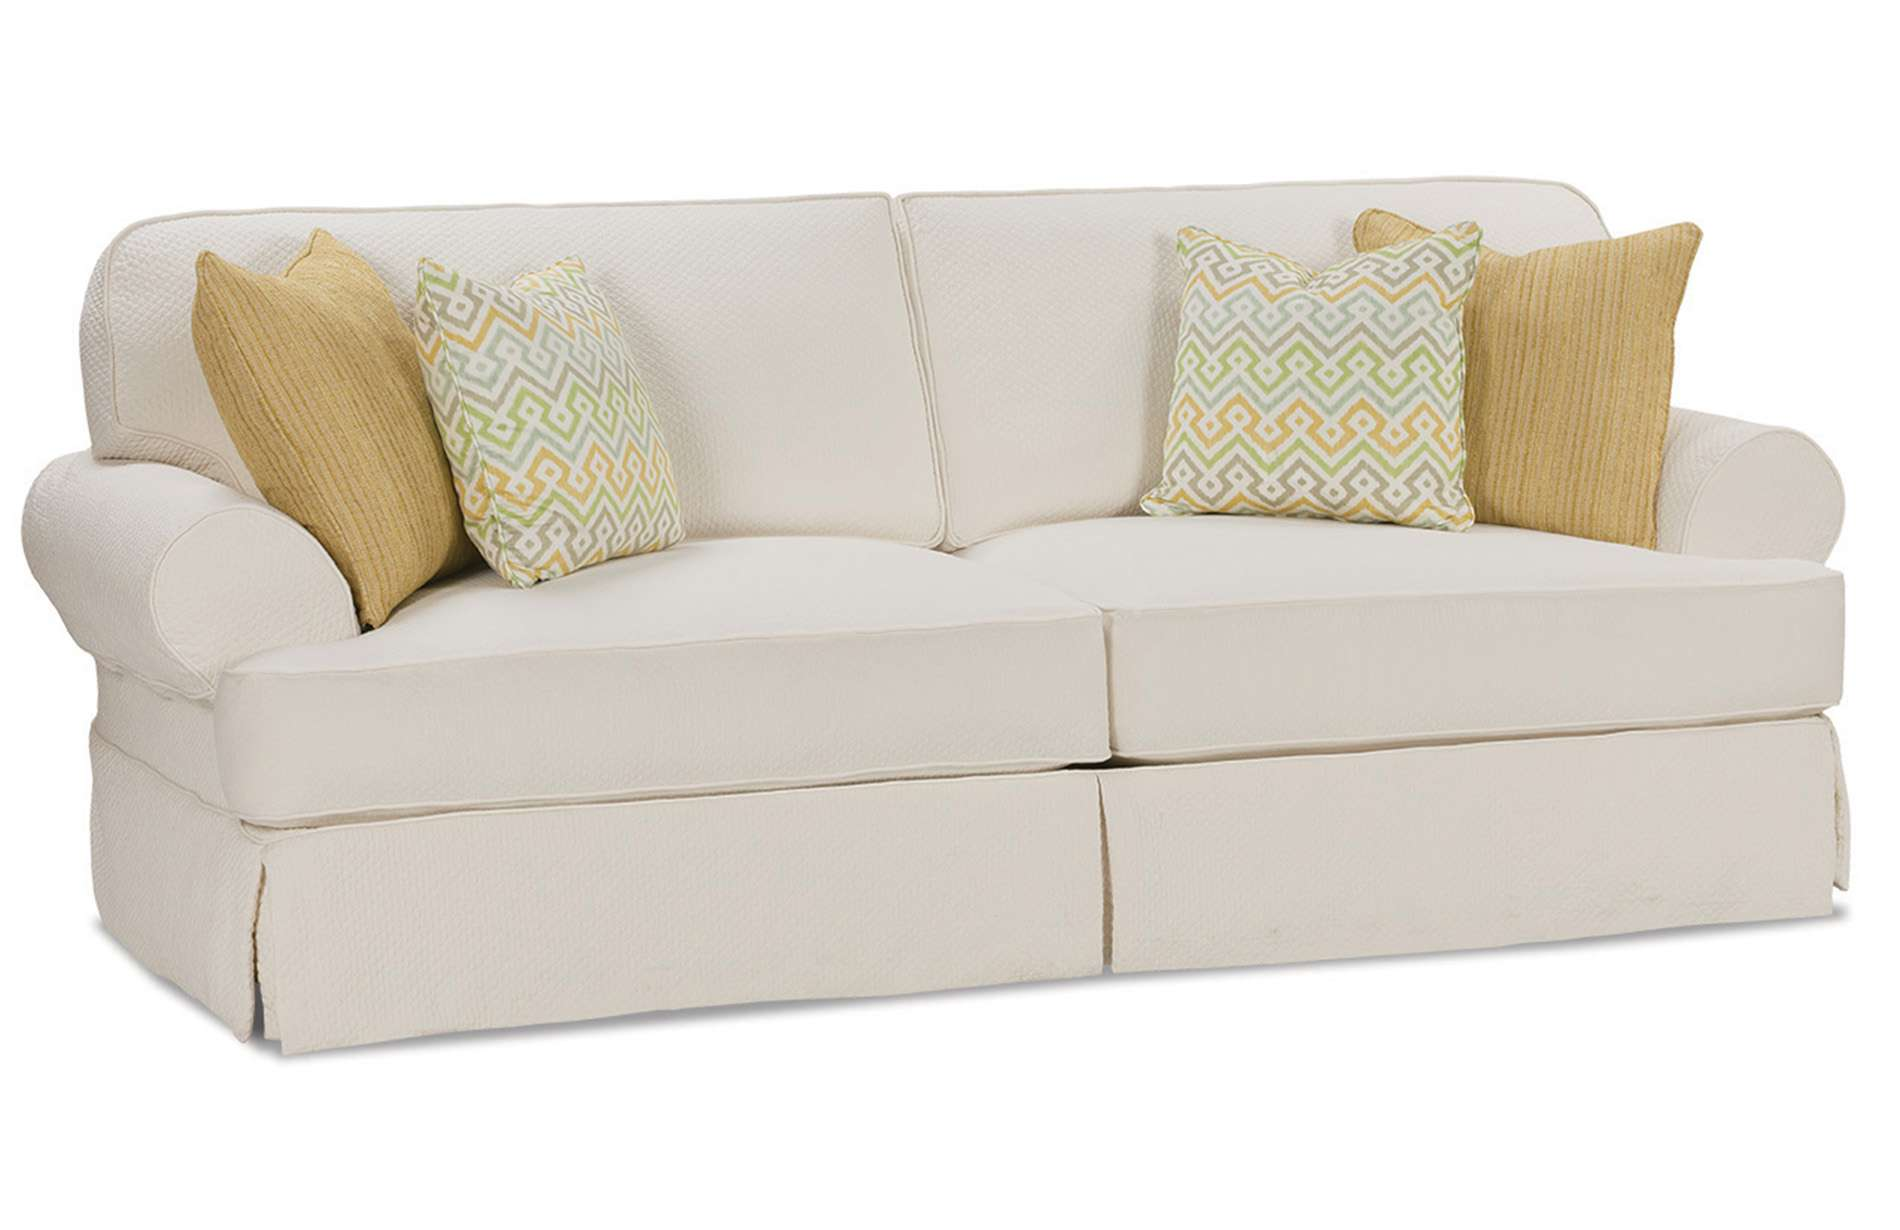 Http Www Rowefurniture Com Products Detail Addison Sofa